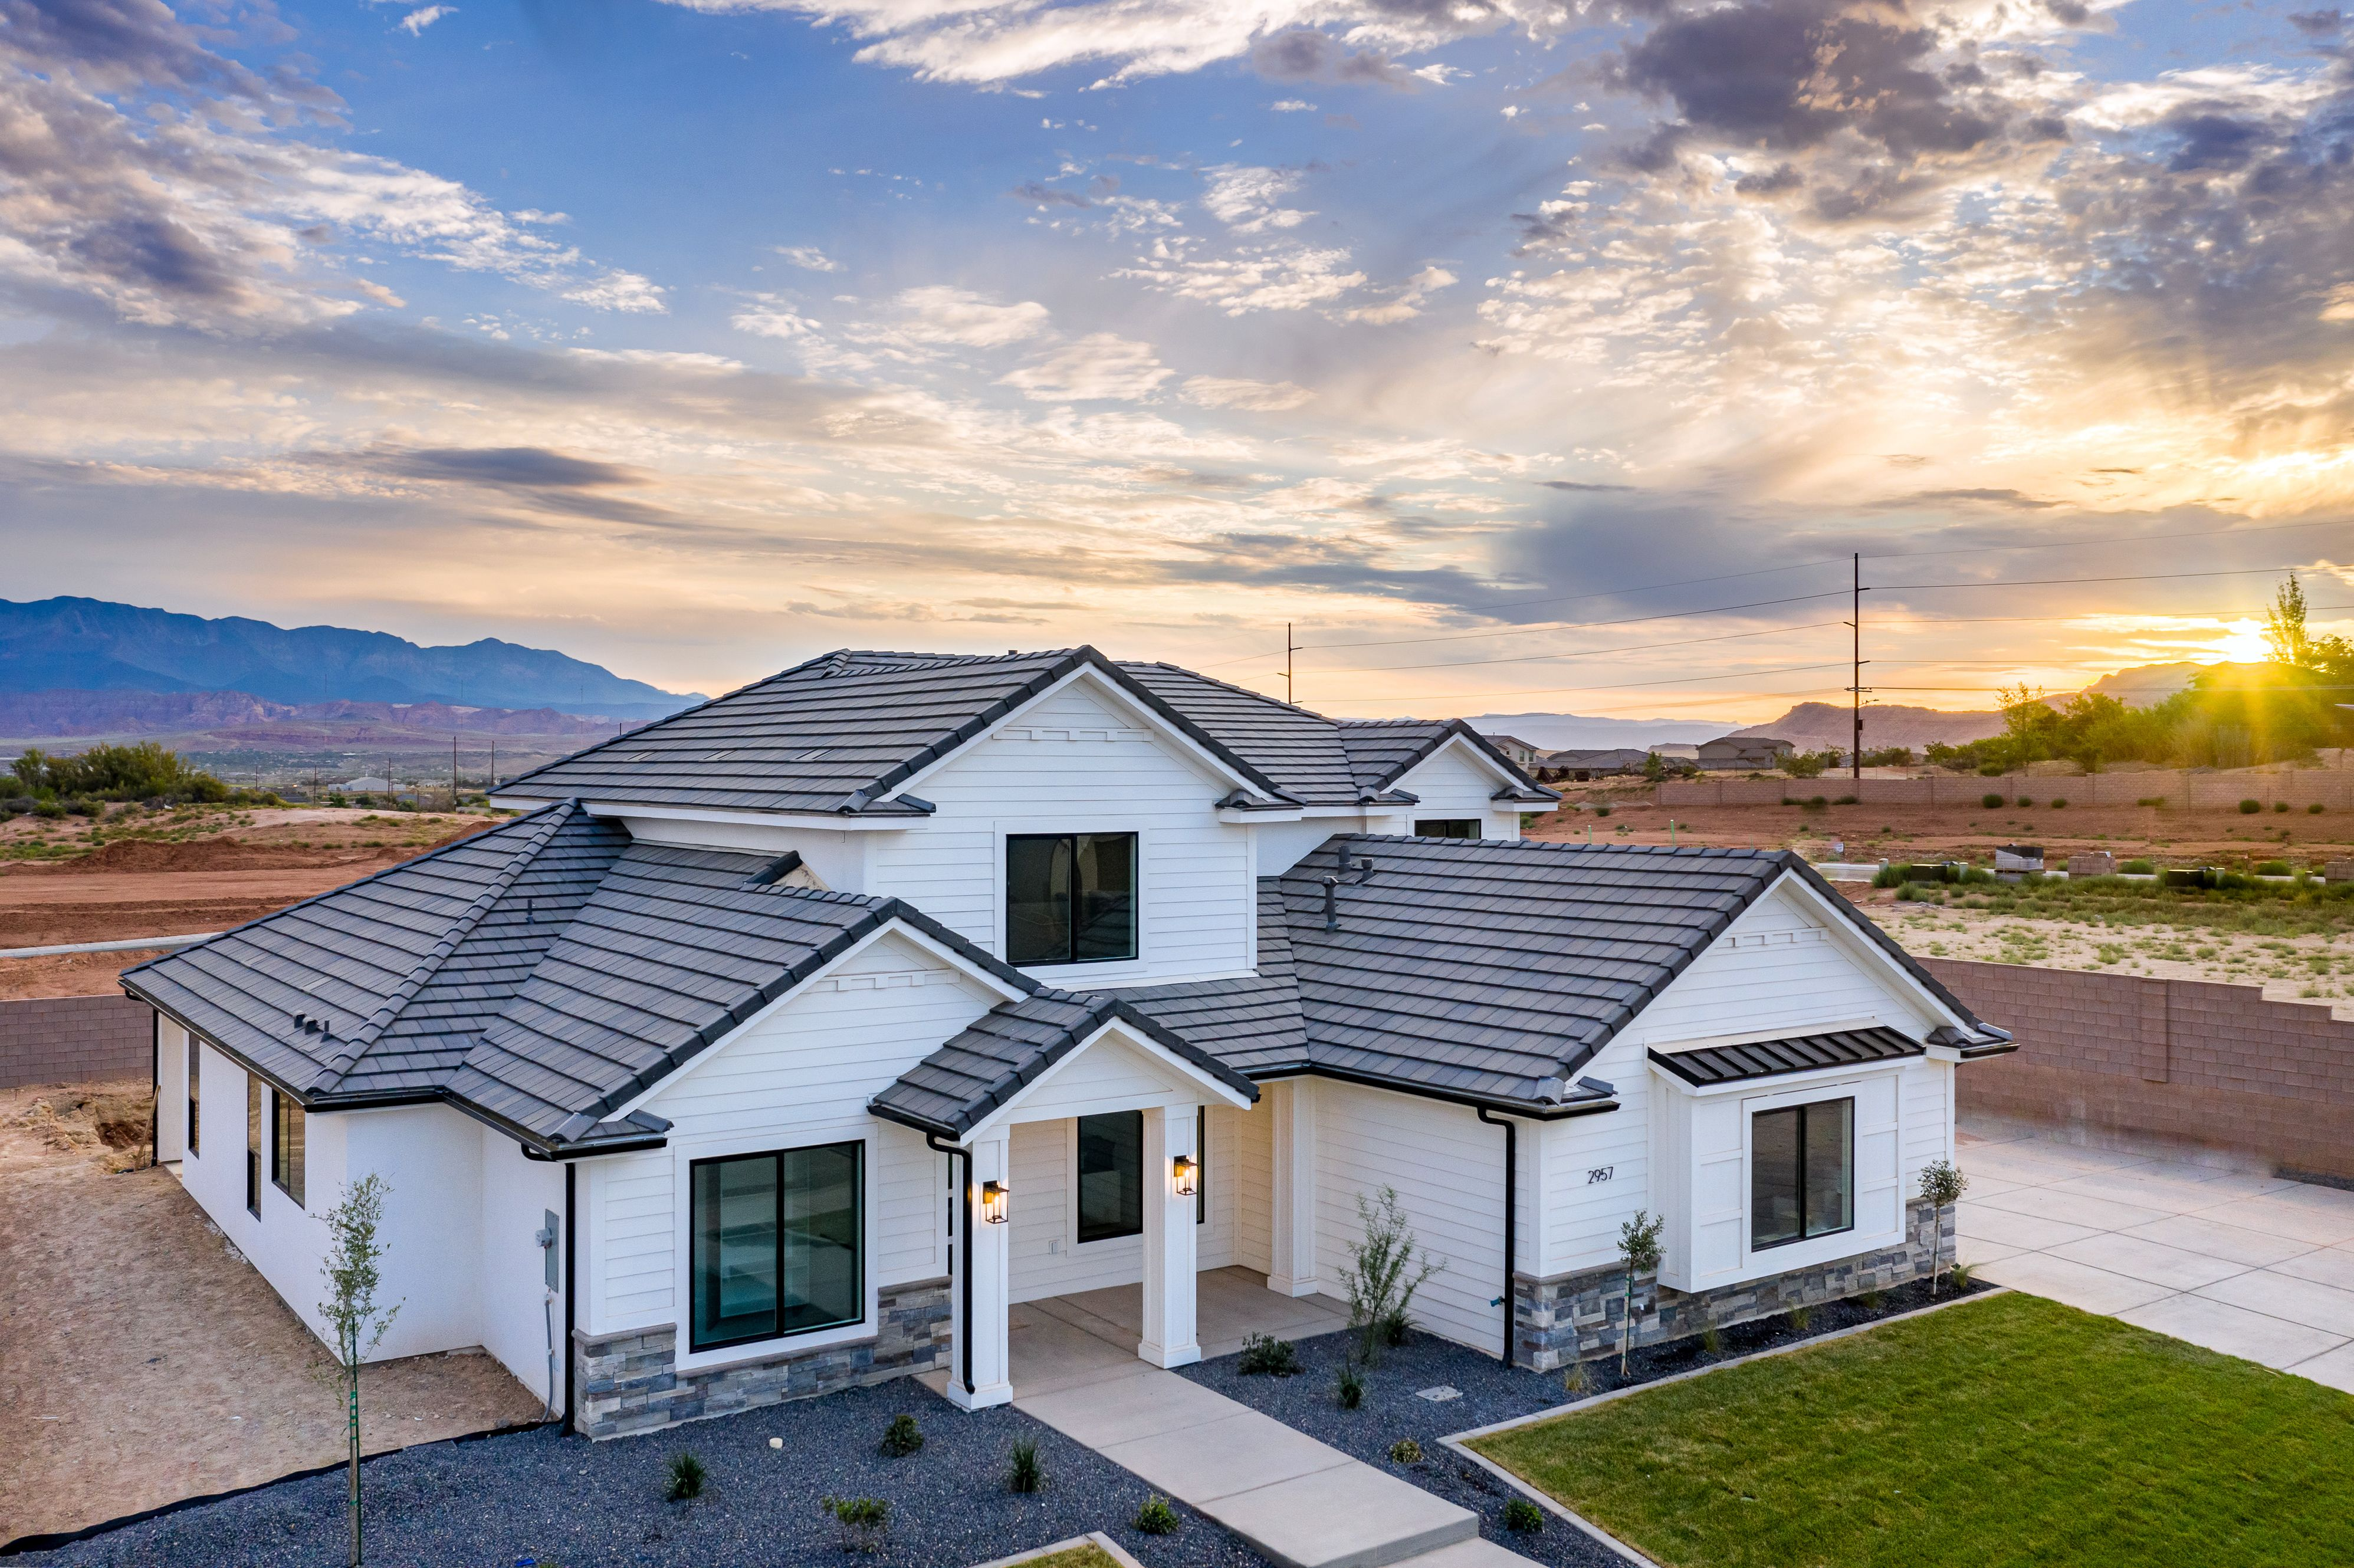 Immaculate Homes- Fantastic semi-custom home builder! Located in ...